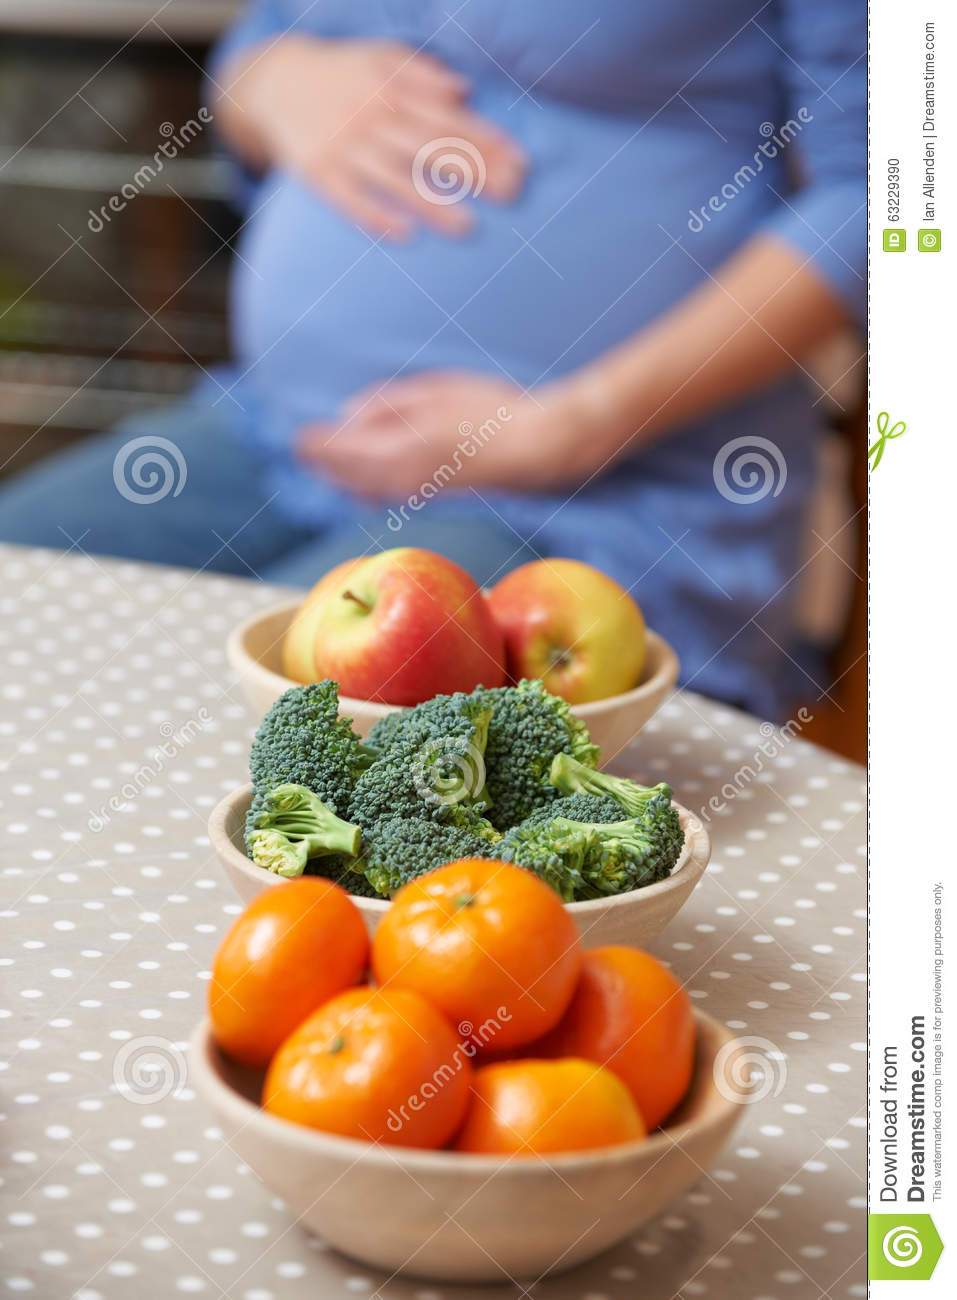 Pregnant Woman Looking At Bowls Of Healthy Fruit And Vegetables